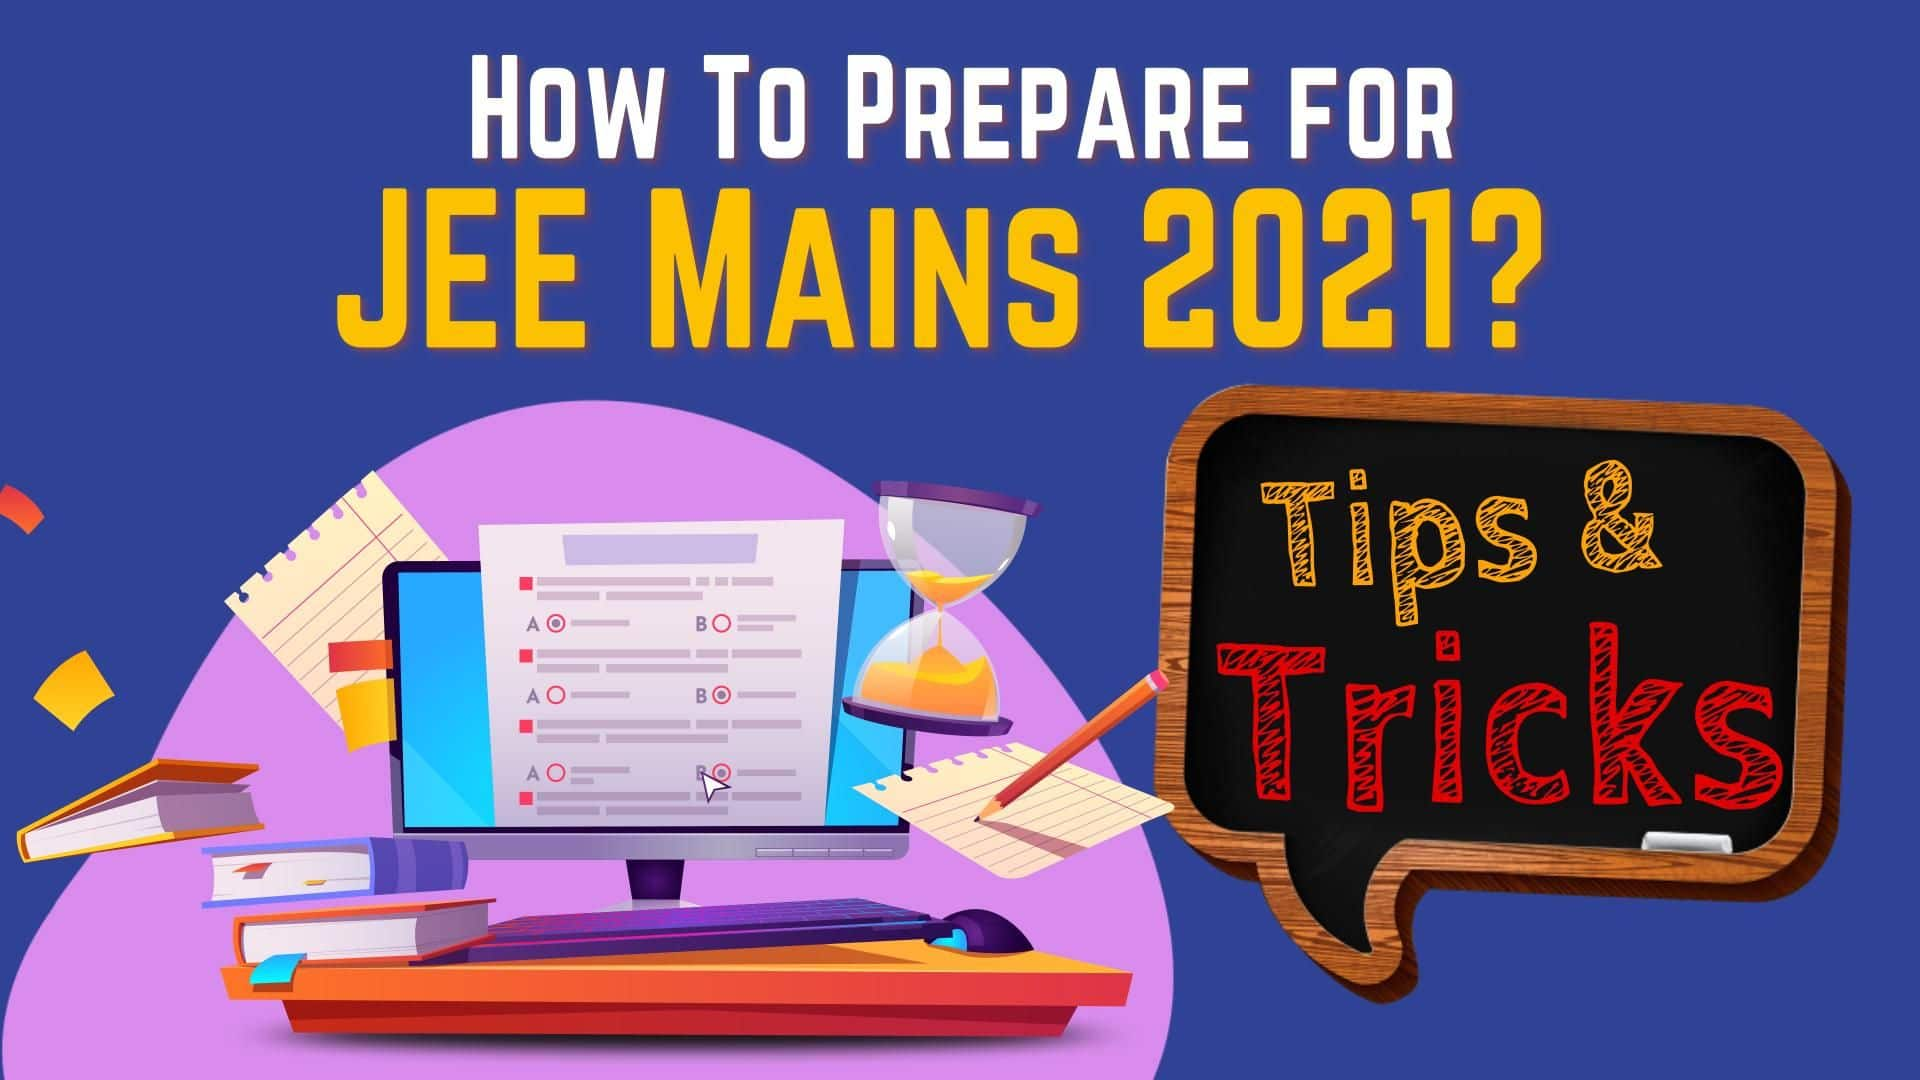 JEE Mains Exams 2021: Here are the Tips and Tricks That Can Help You Pass With Flying Colours